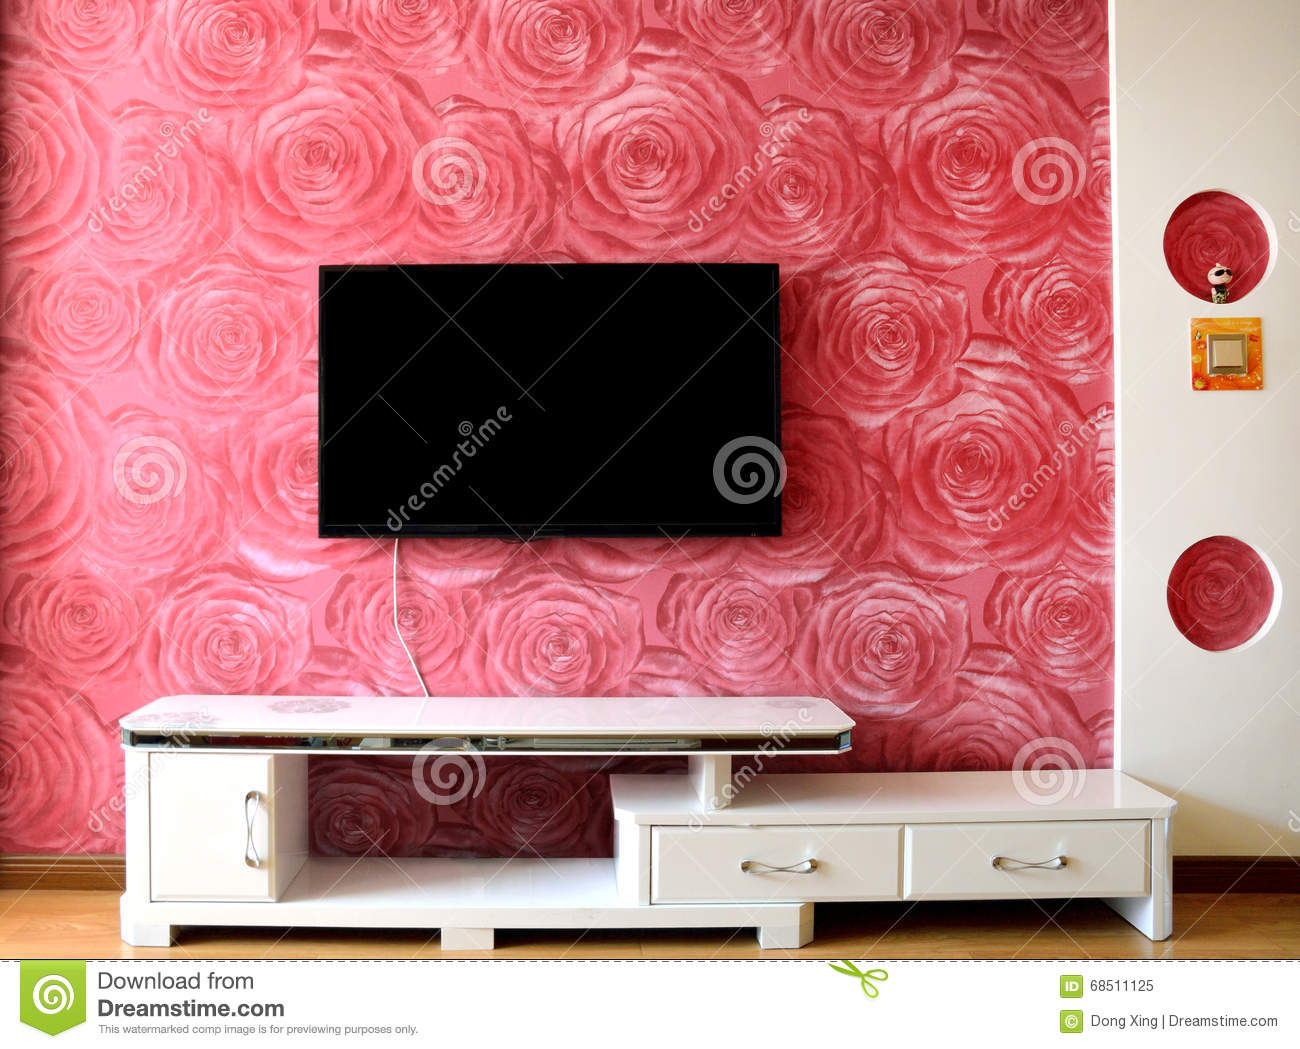 Mur Darrangement De Tv Image Stock Image Du Rose Conception